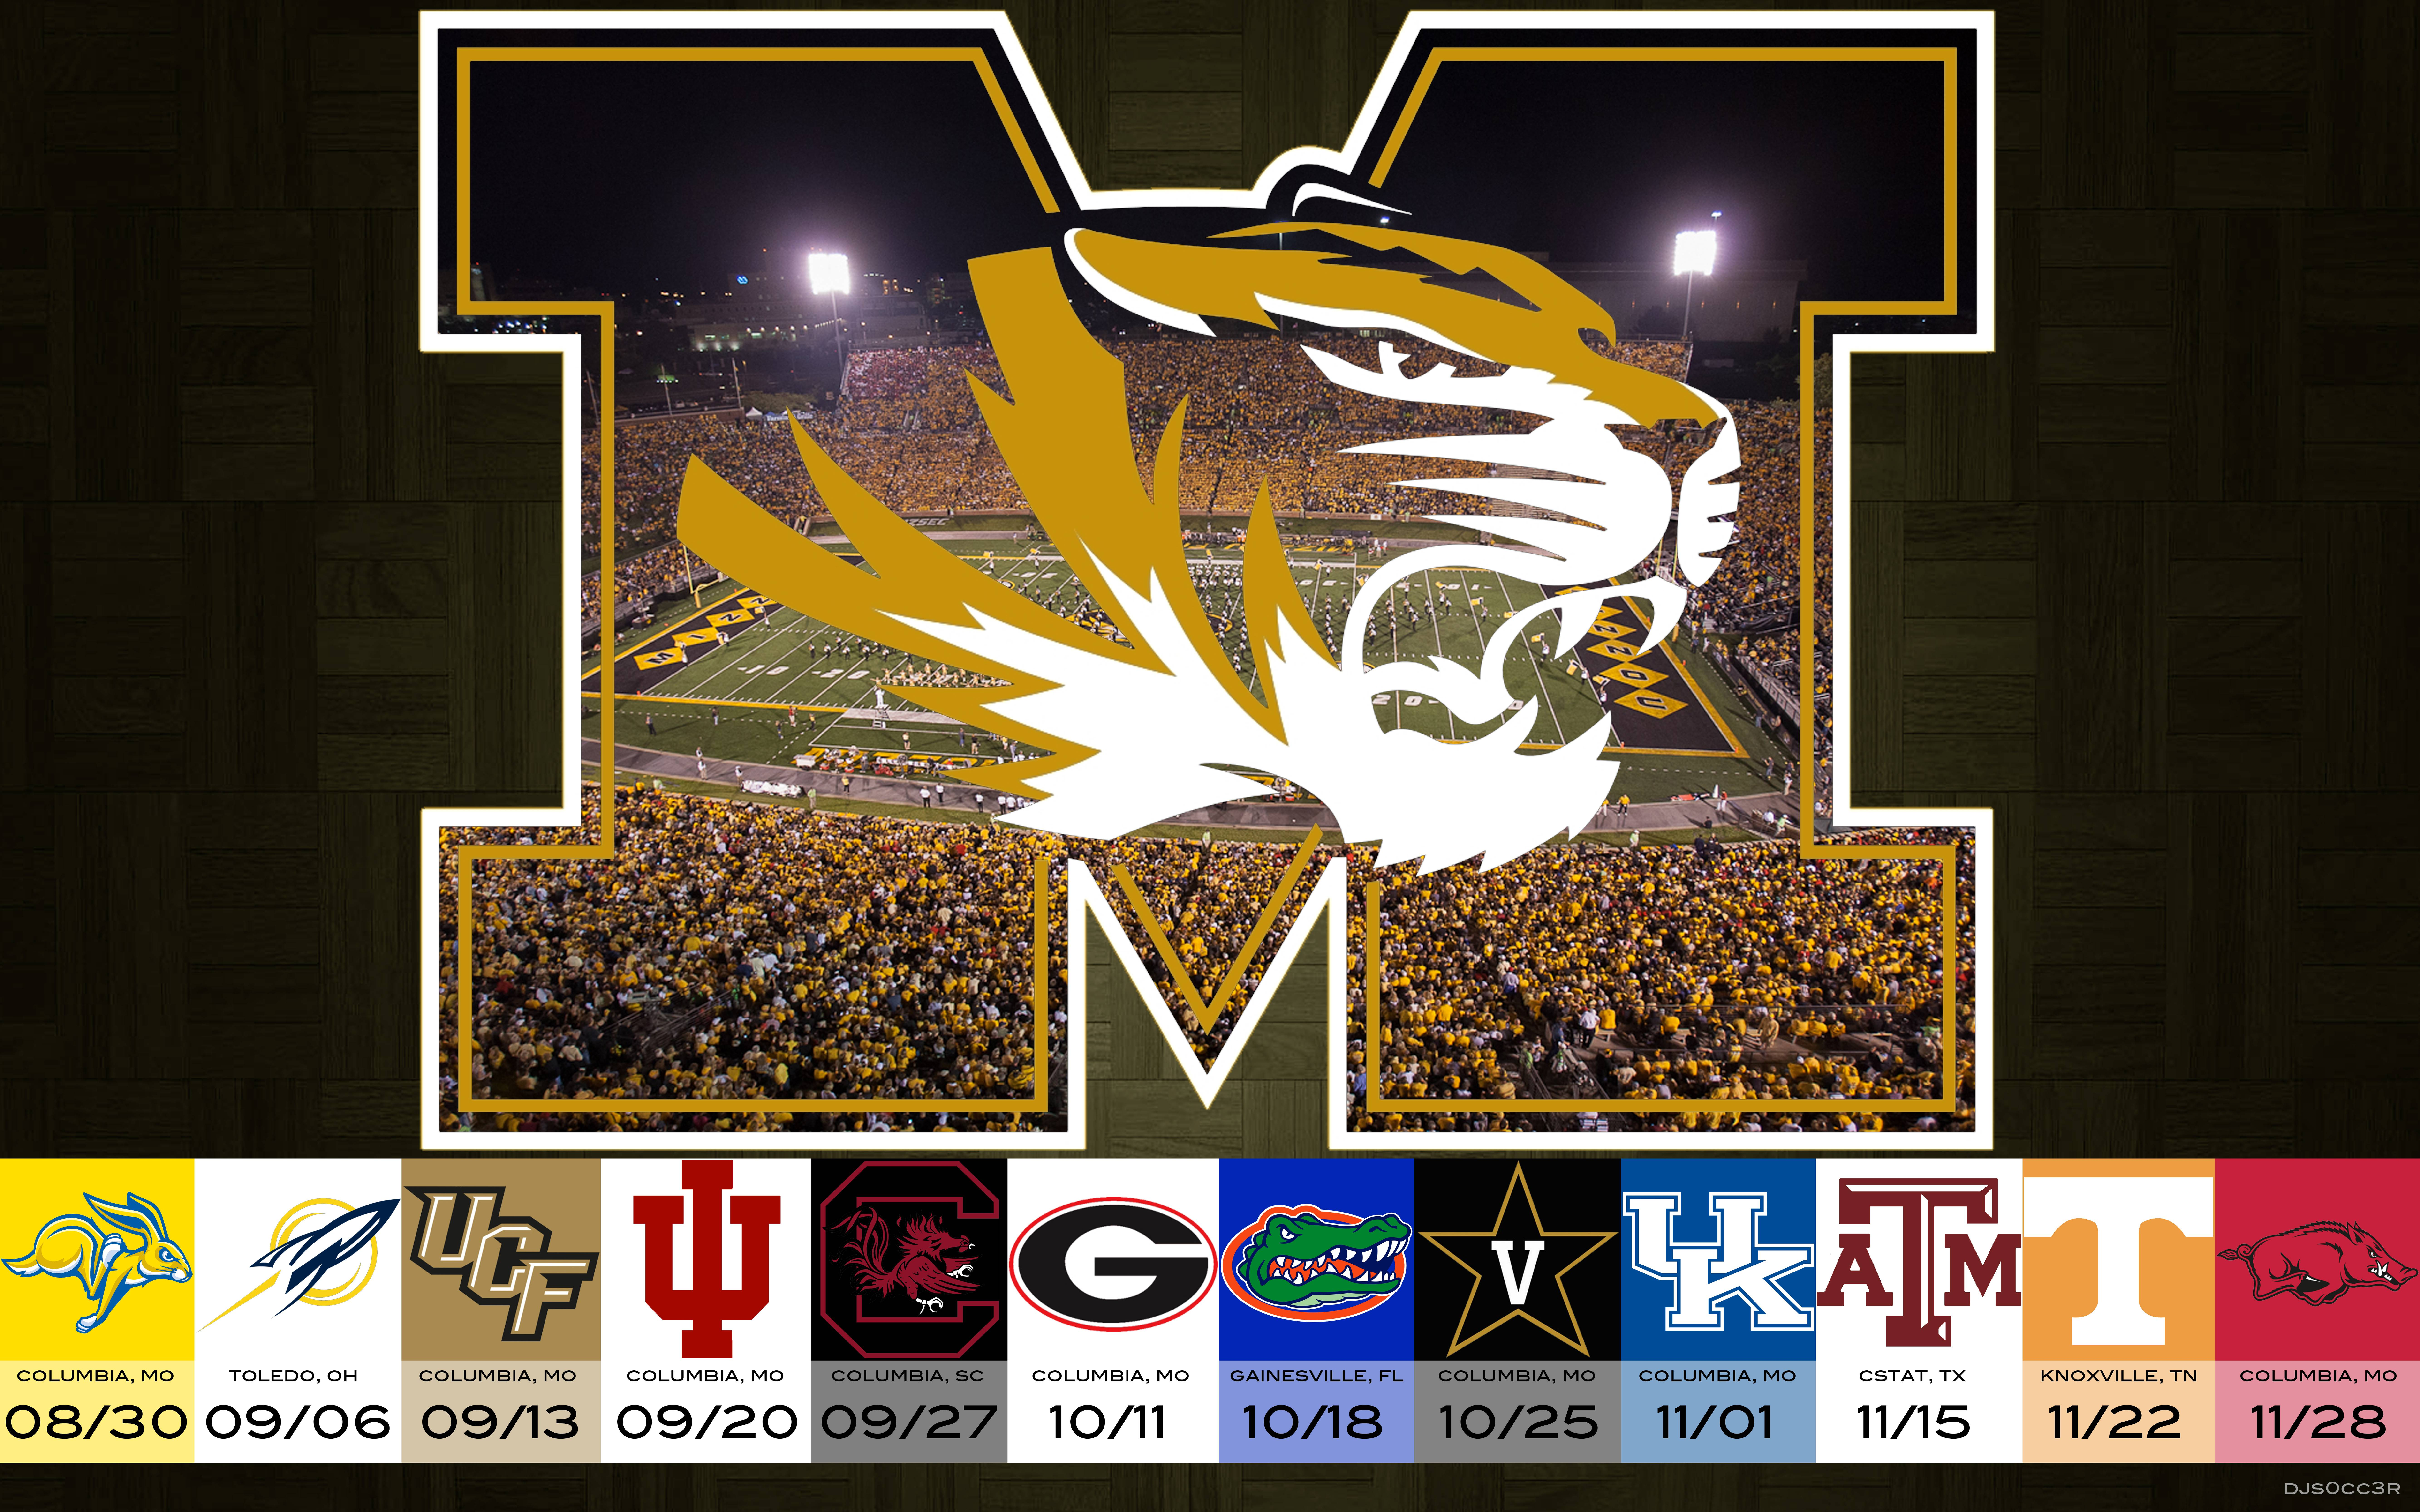 Free 2014 schedule wallpapers for Sec football wallpaper